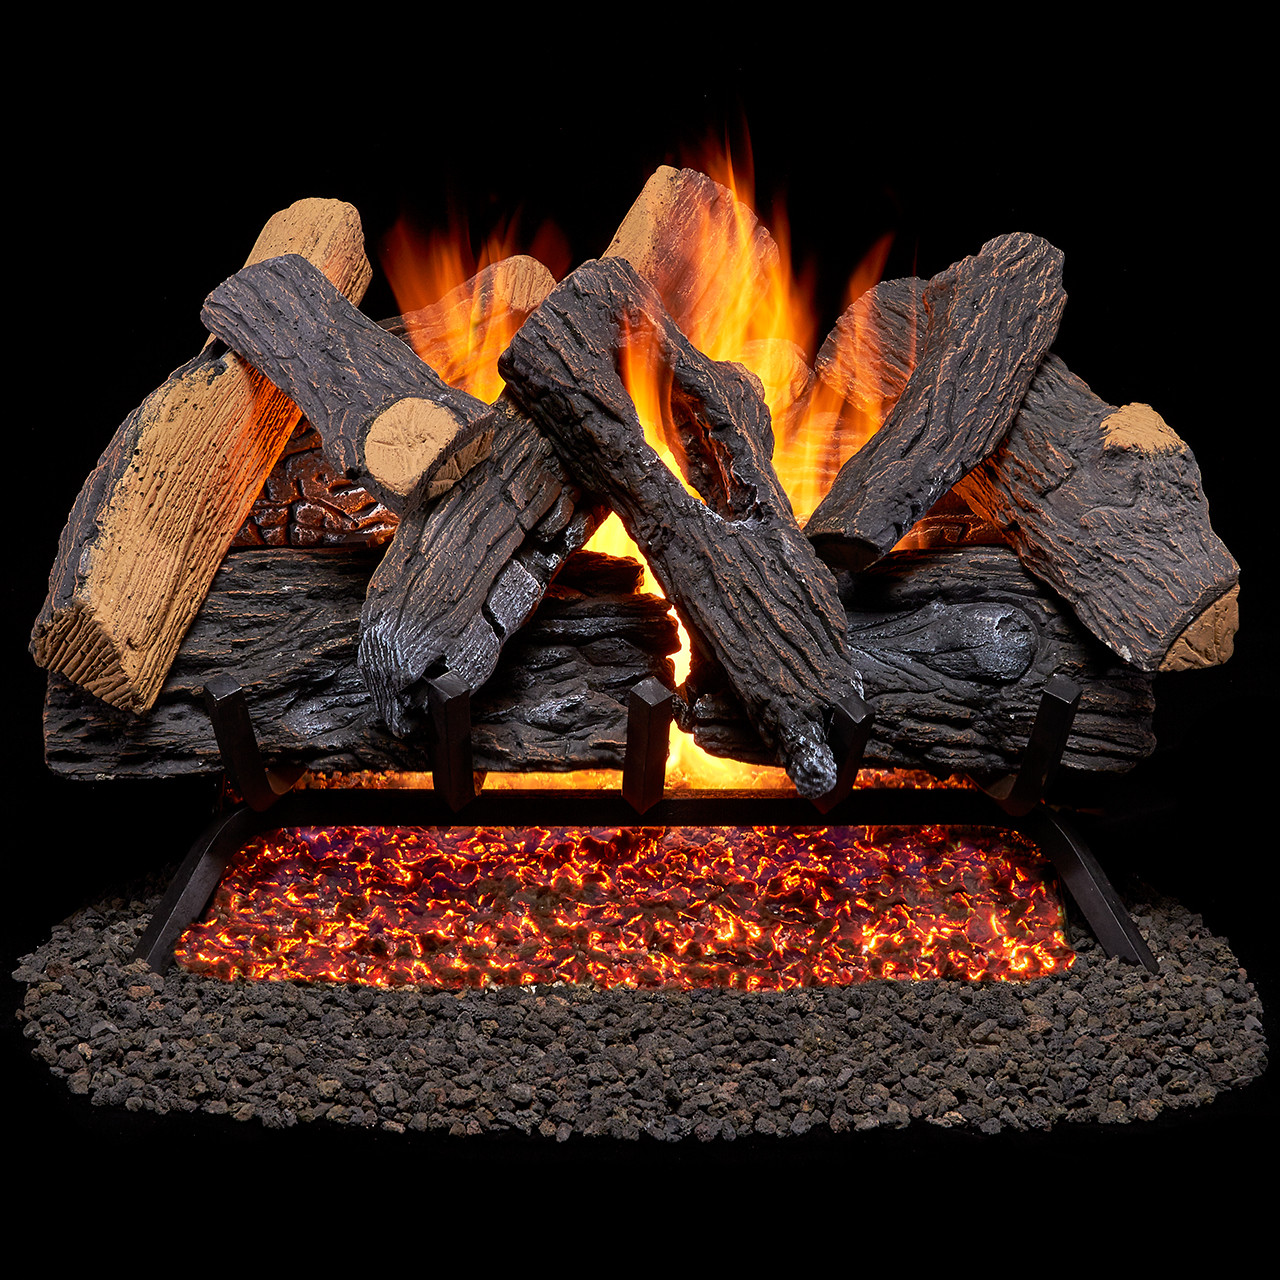 duluth forge vented natural gas fireplace log set 18 in 45 000